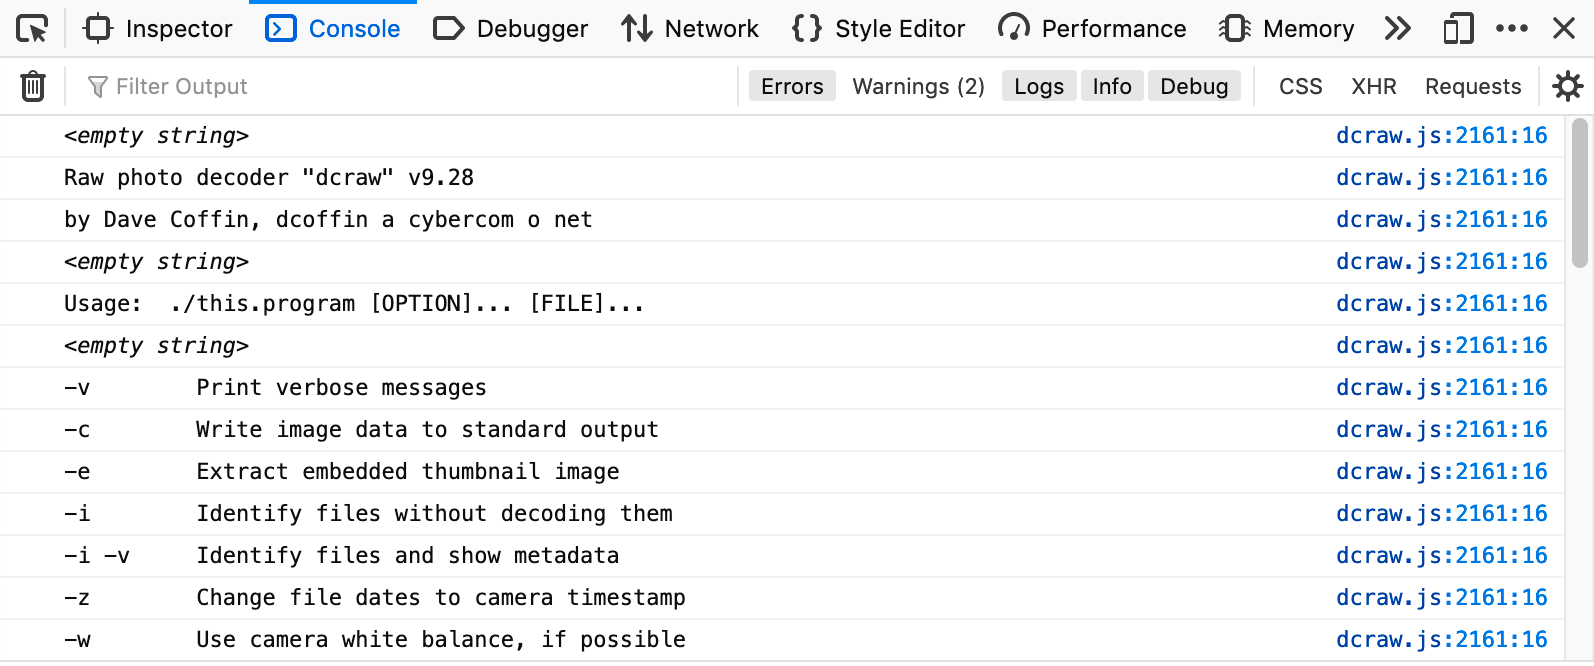 dcraw browser console output